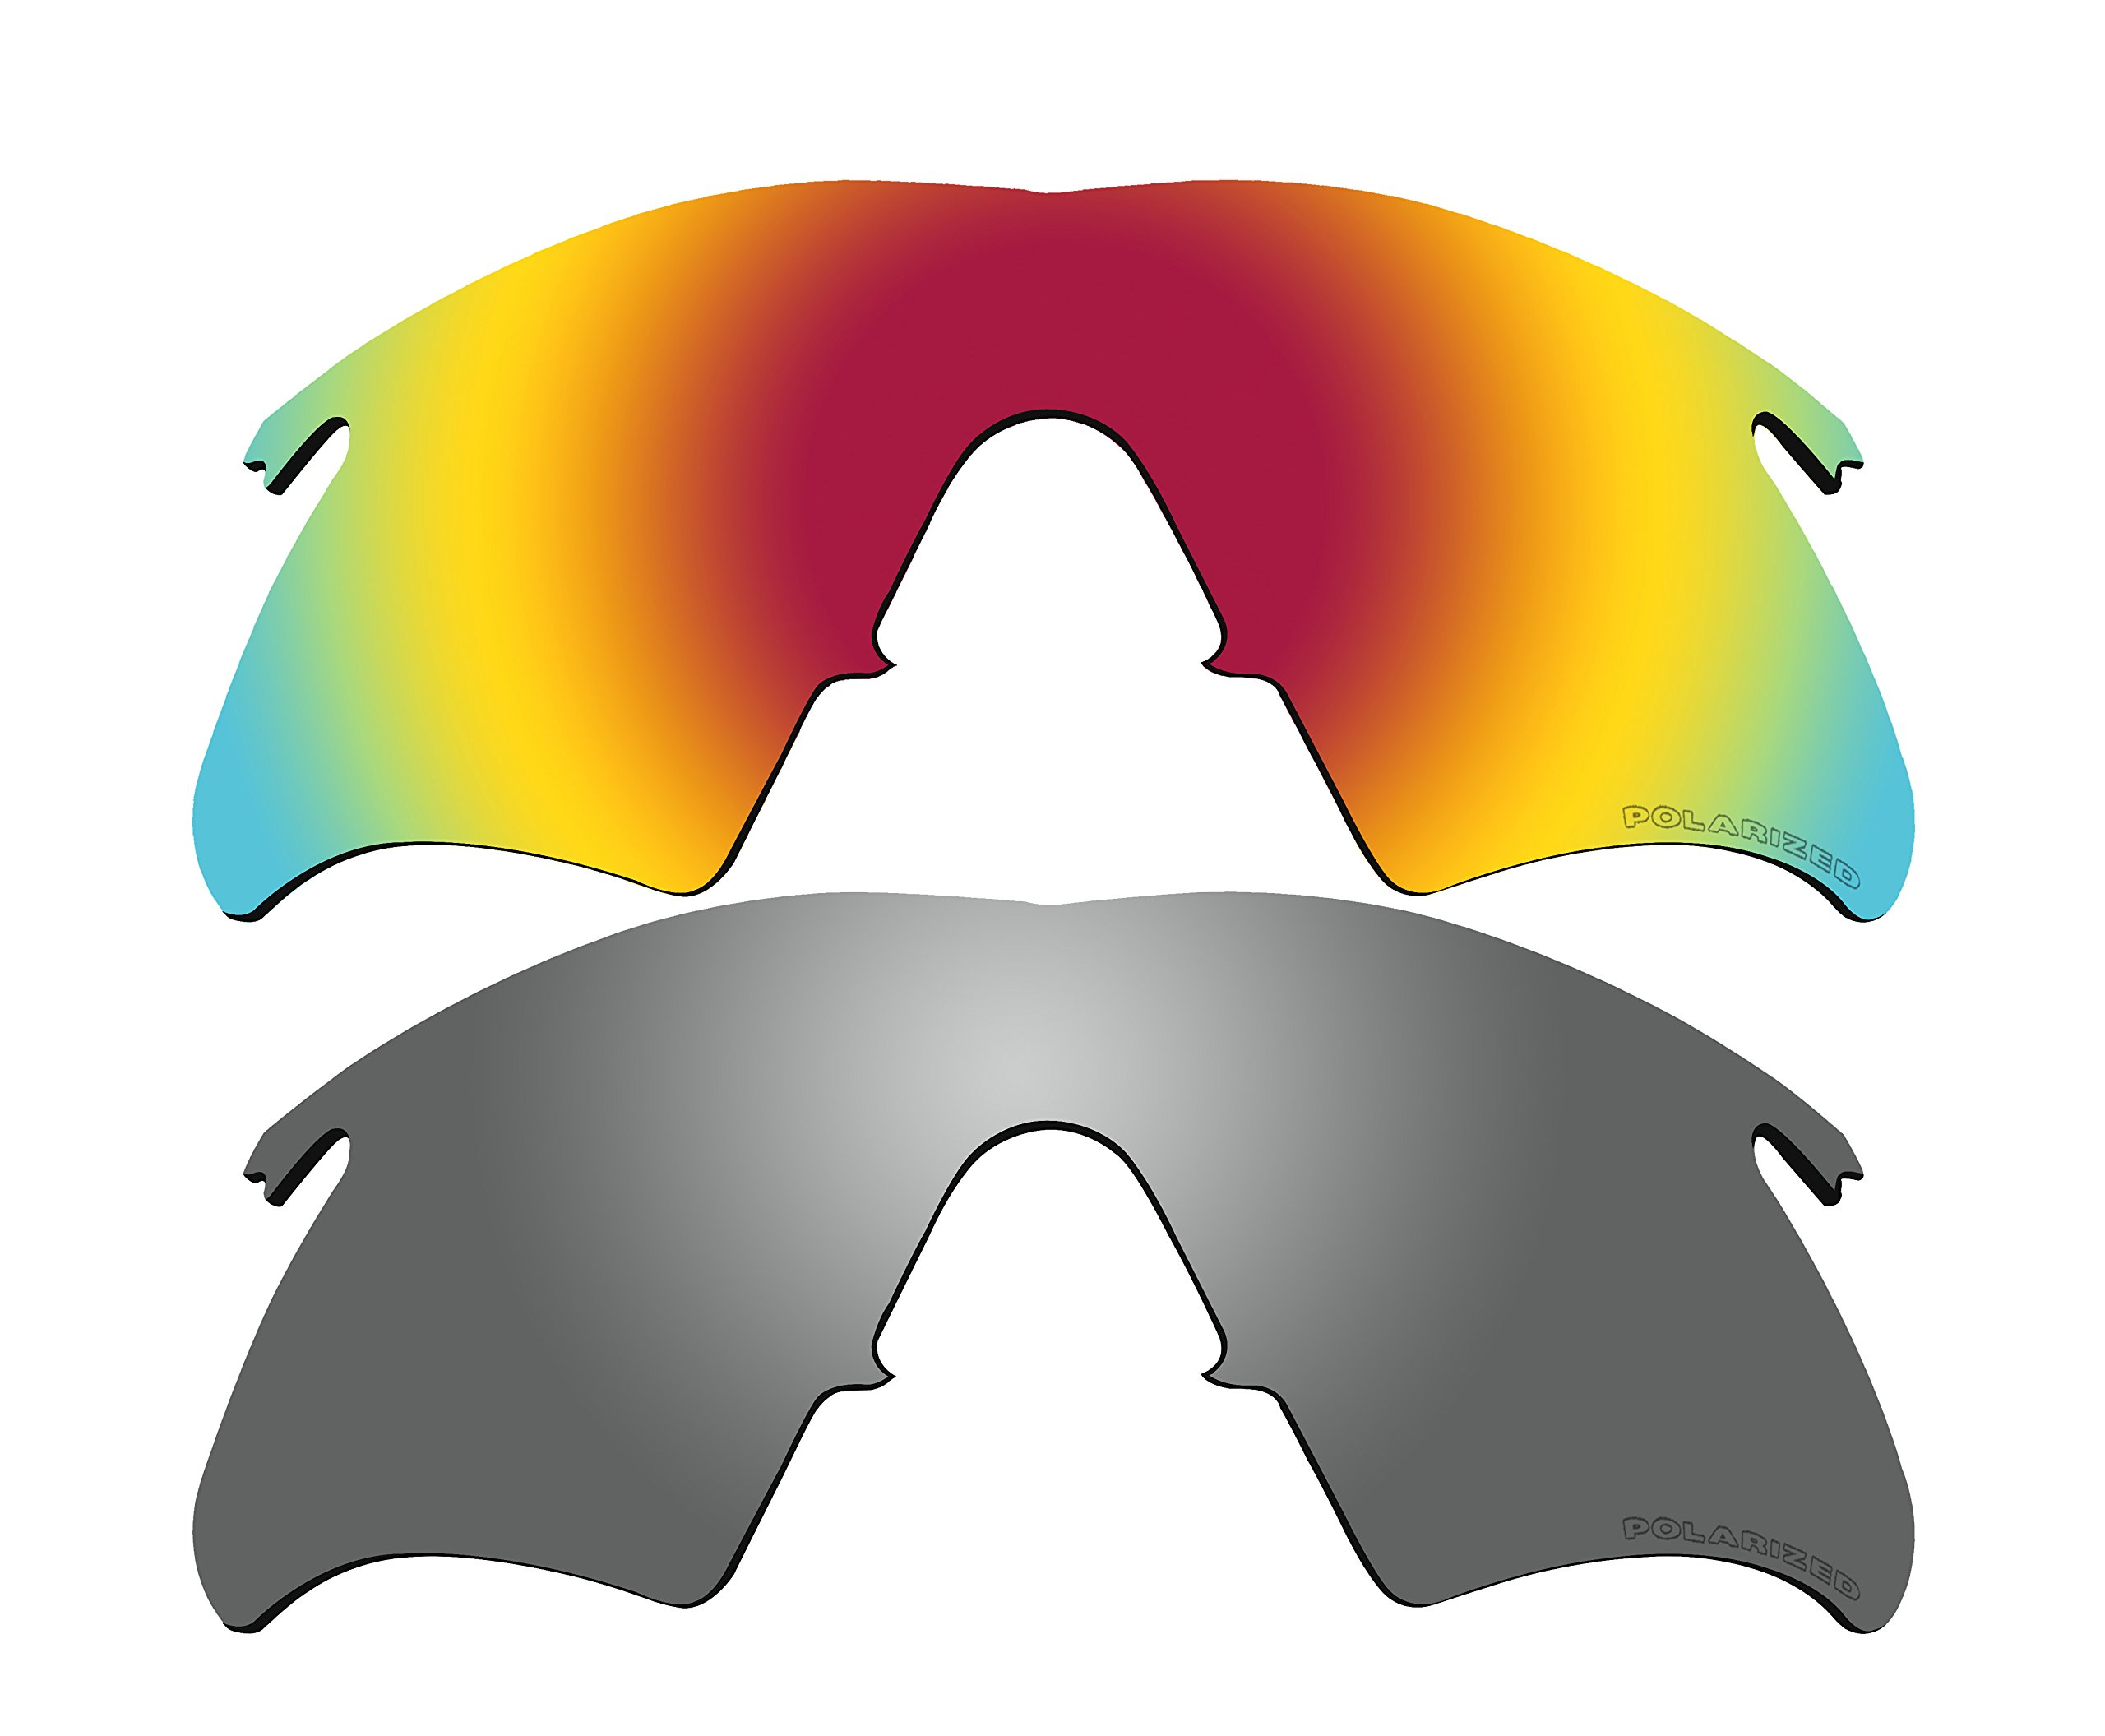 2 Pairs Polarized Lenses Replacement Red & Black Mirror for Oakley M Frame Heater, New (1999) Sunglasses